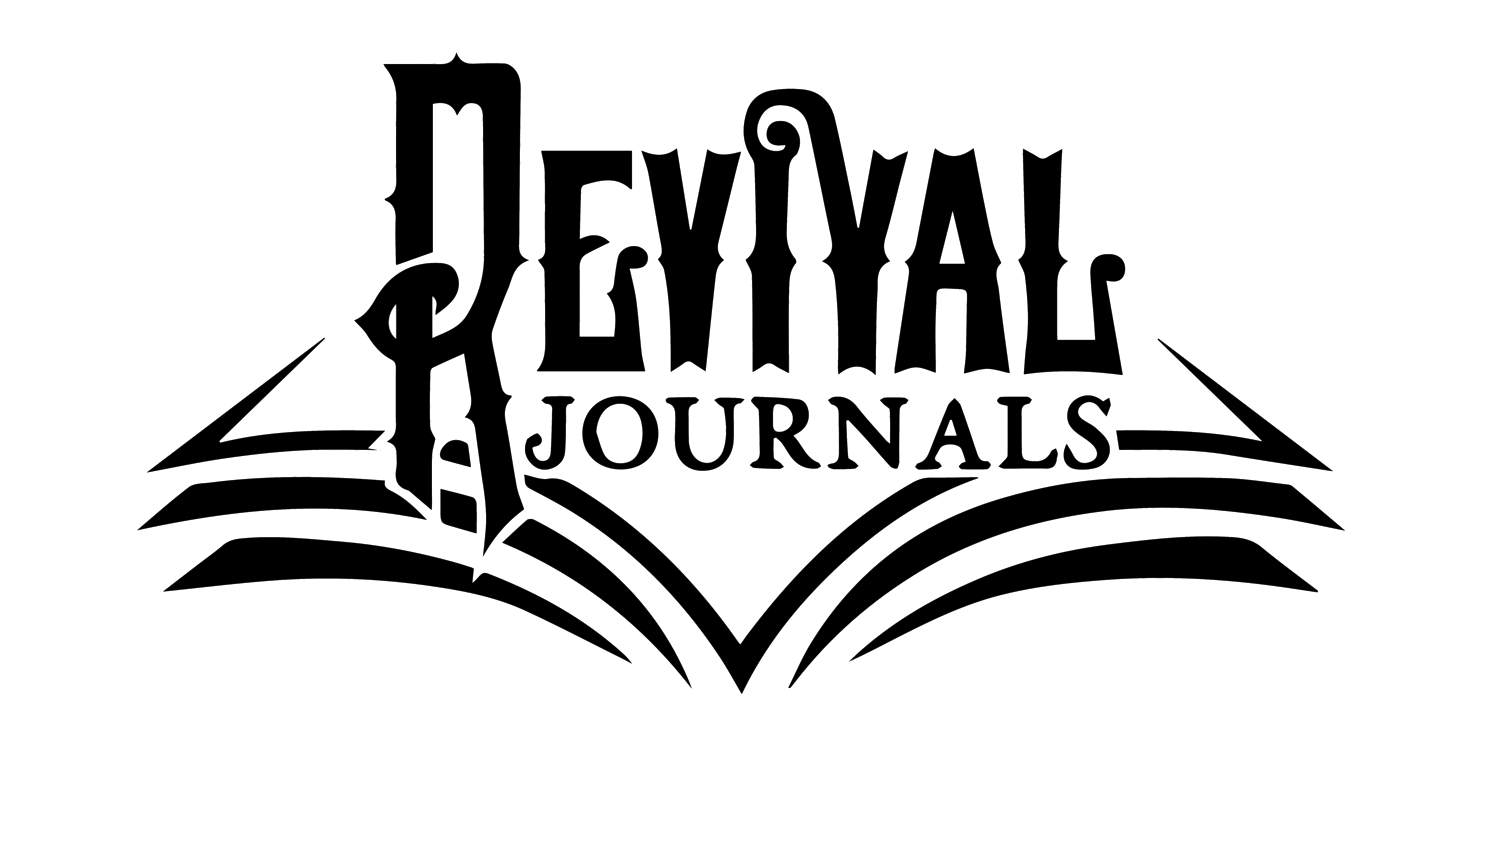 Revival Journals